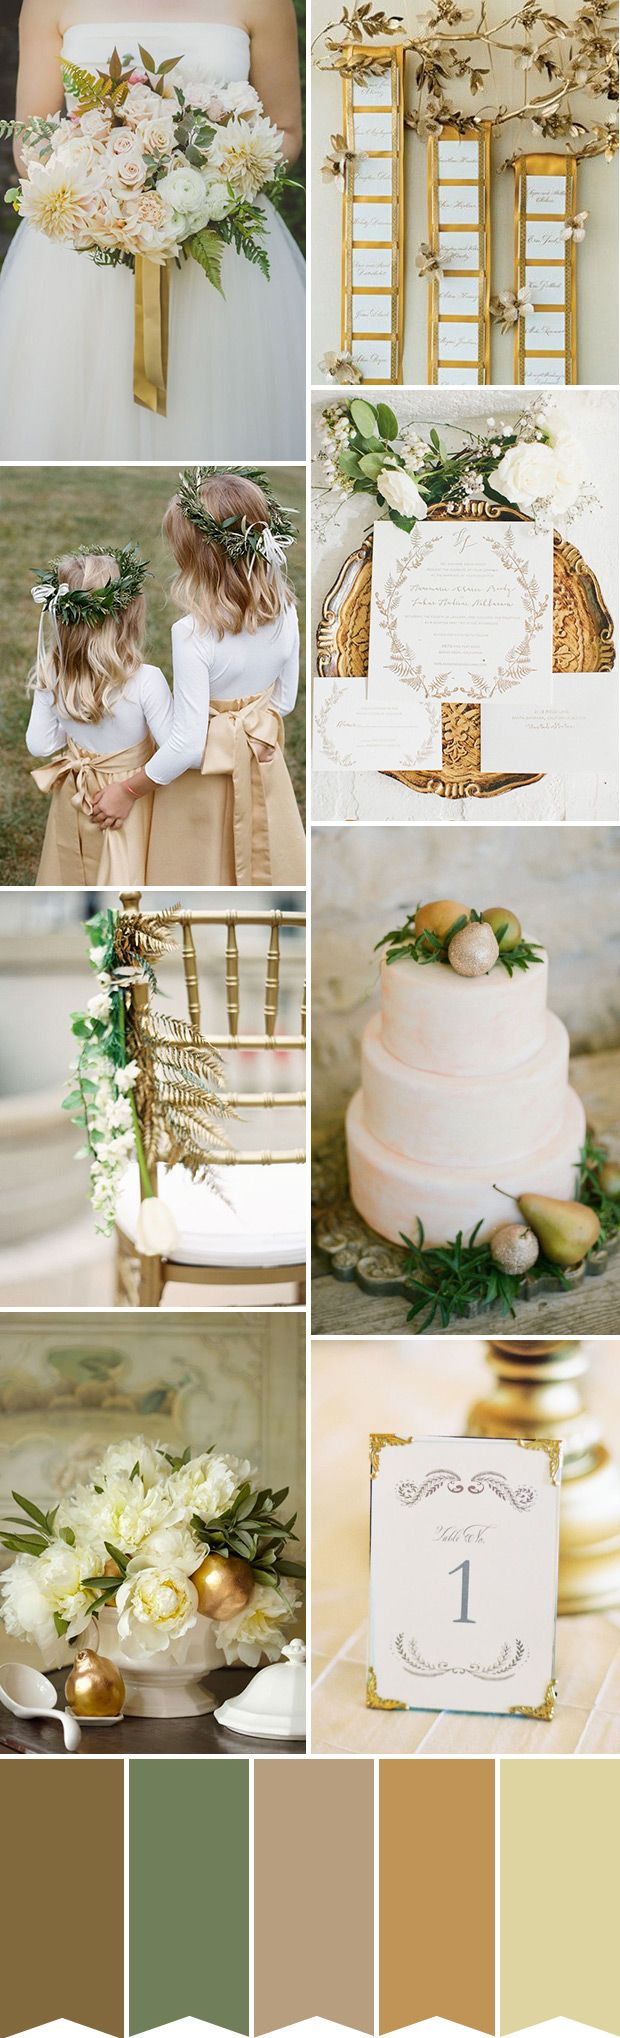 Glamorous Gold wedding color palette | www.onefabday.com